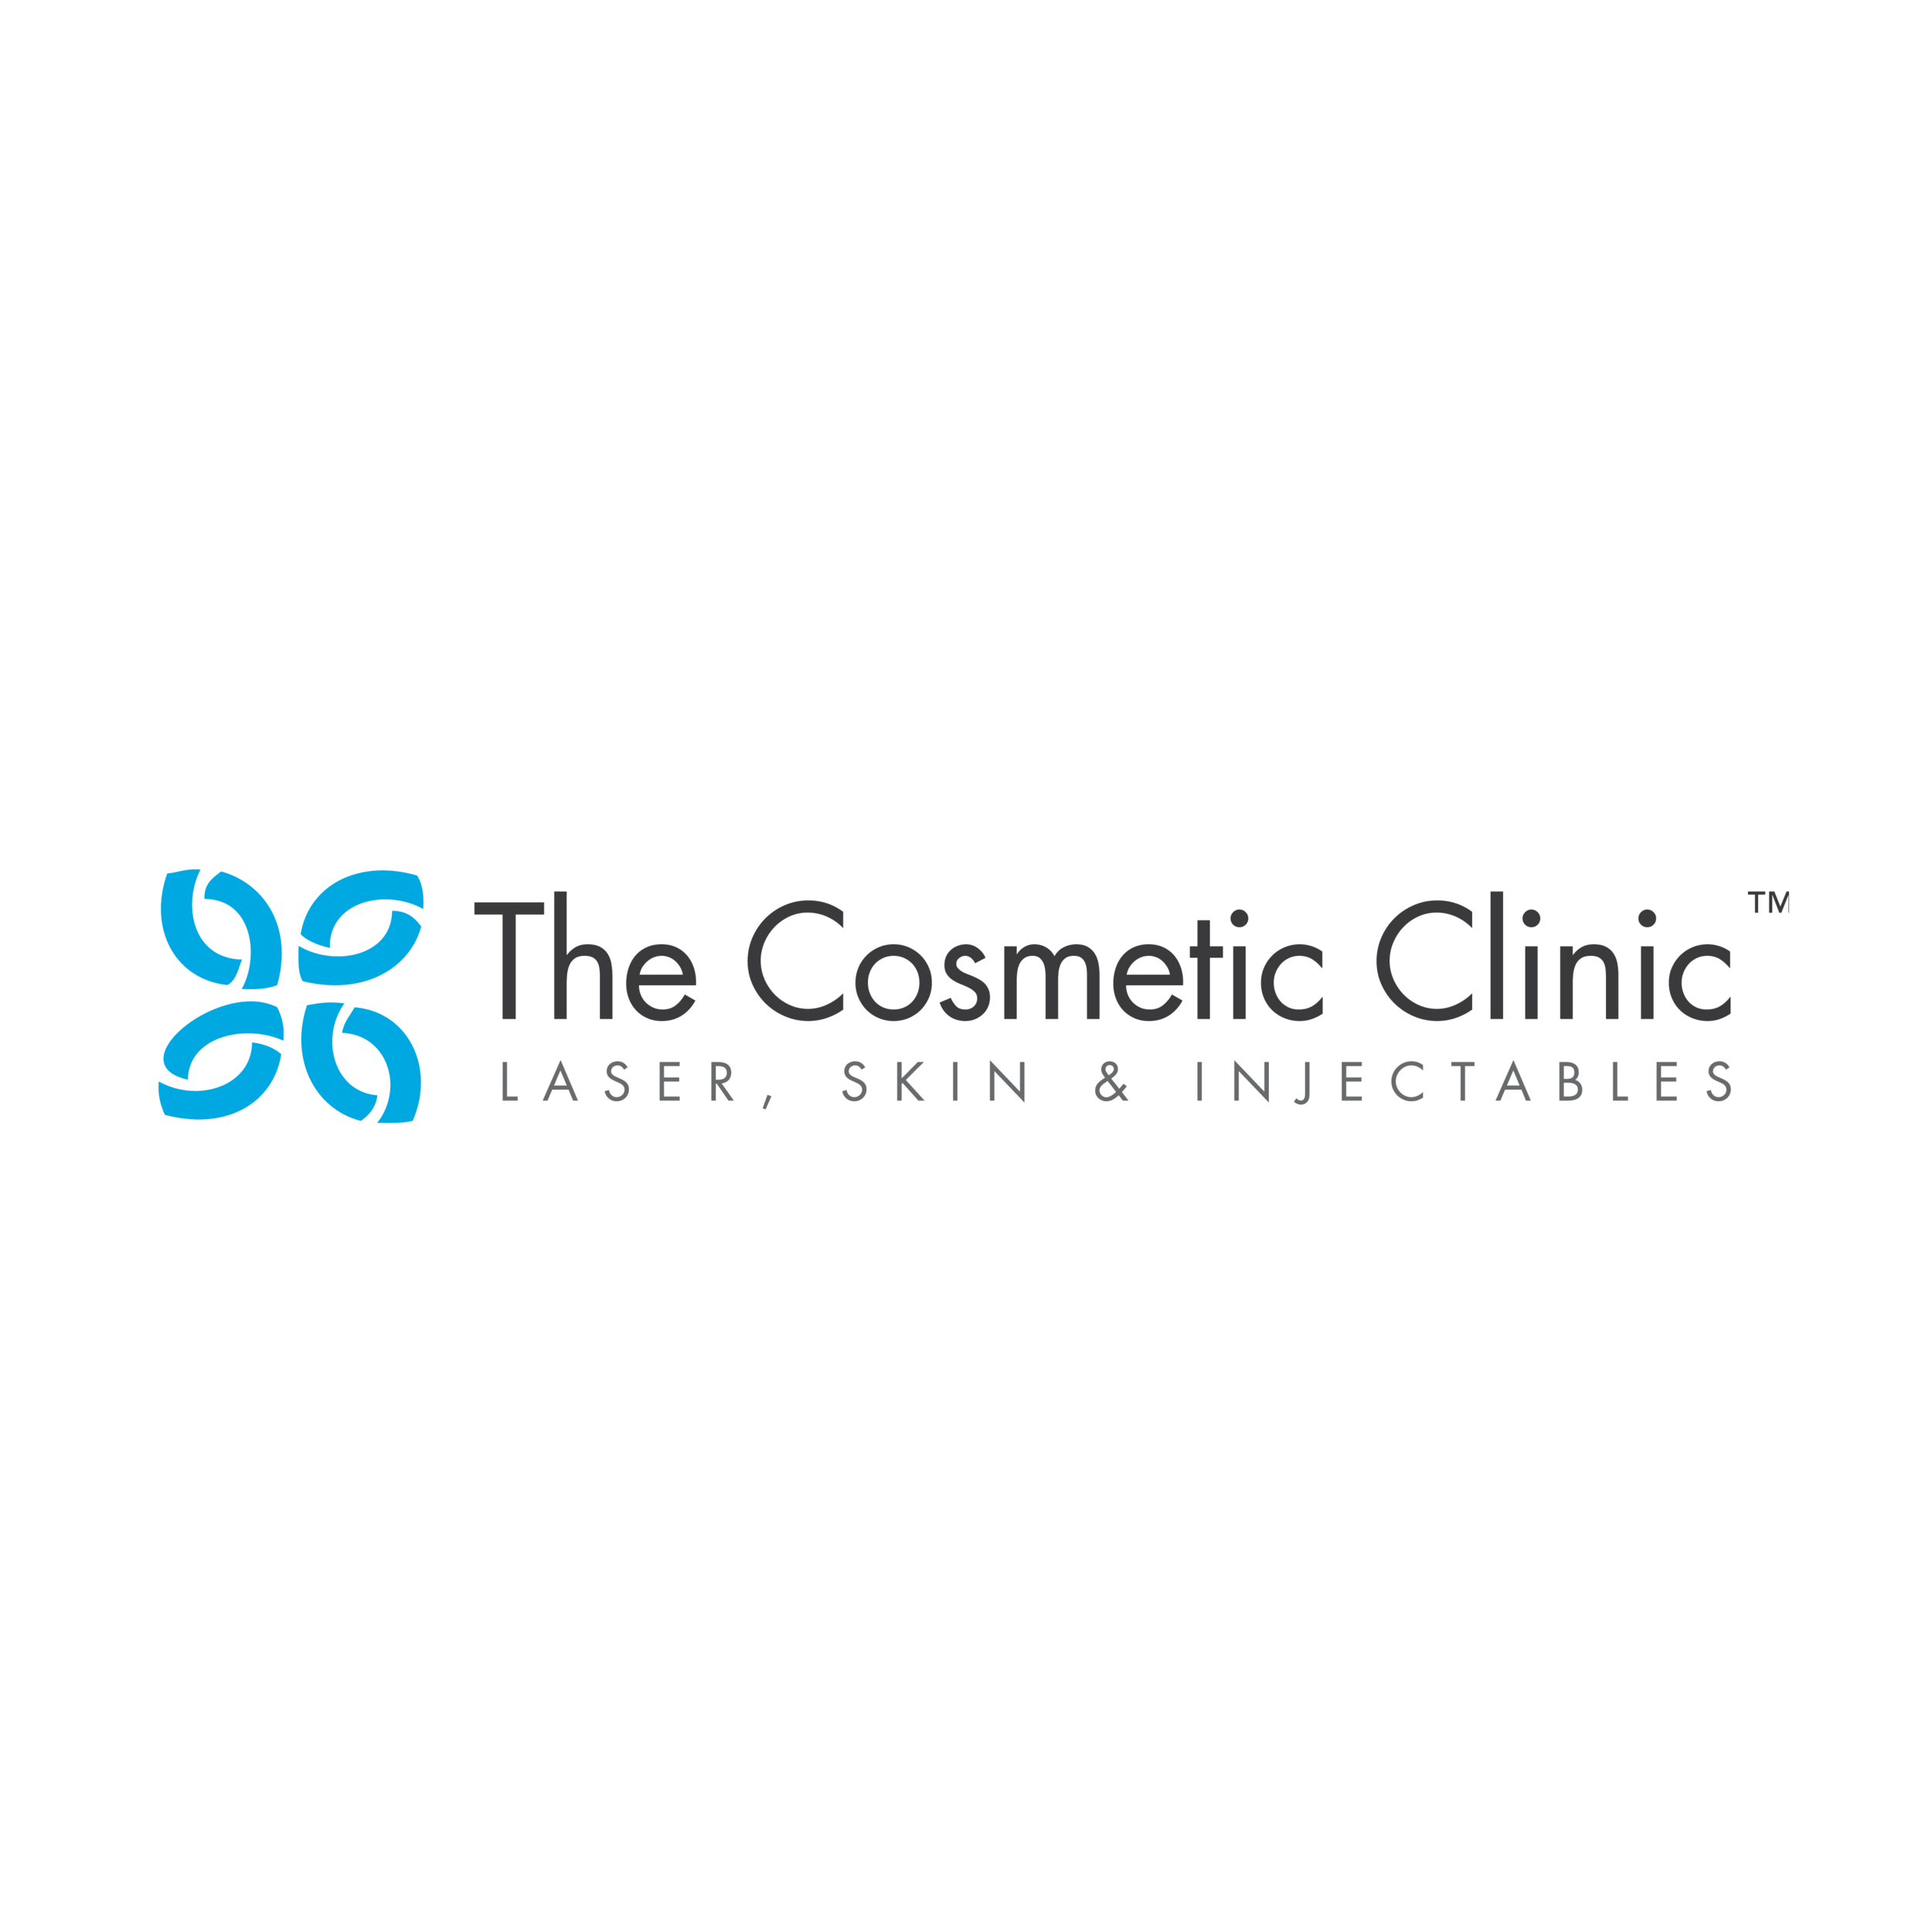 The Cosmetic Clinic Logo_30 Nov 18.png